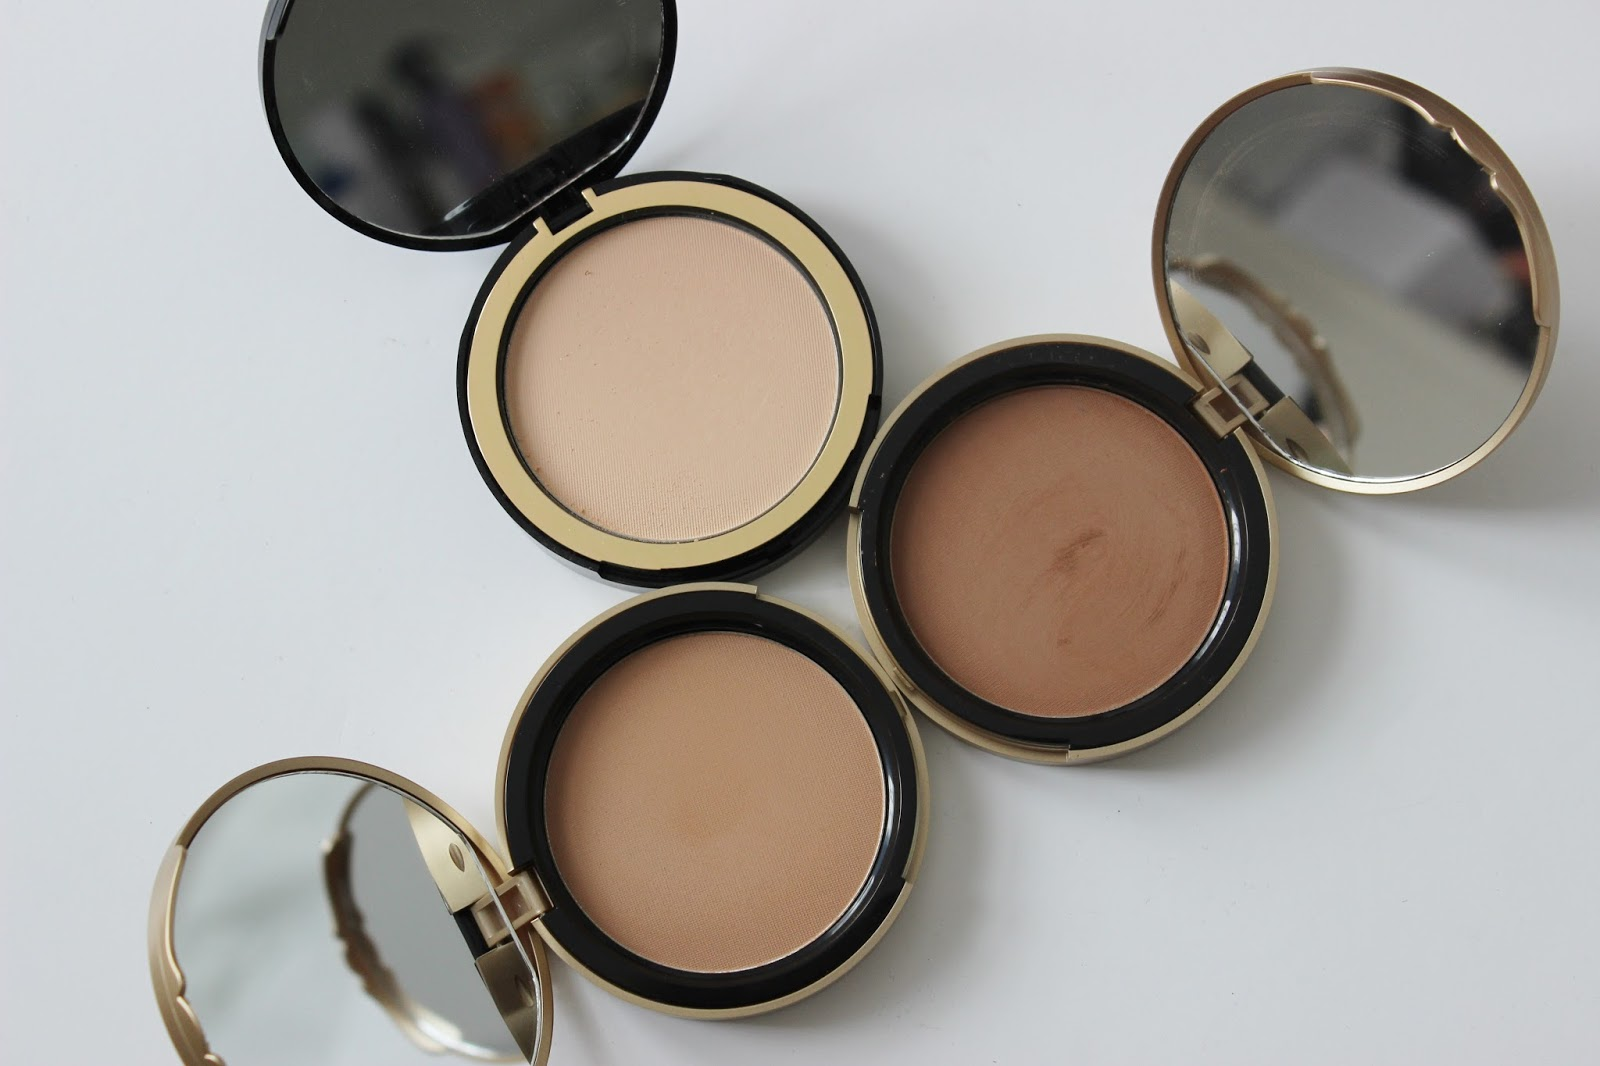 Too Faced Chocolate Soleil Bronzer and Cocoa Powder Foundation ...